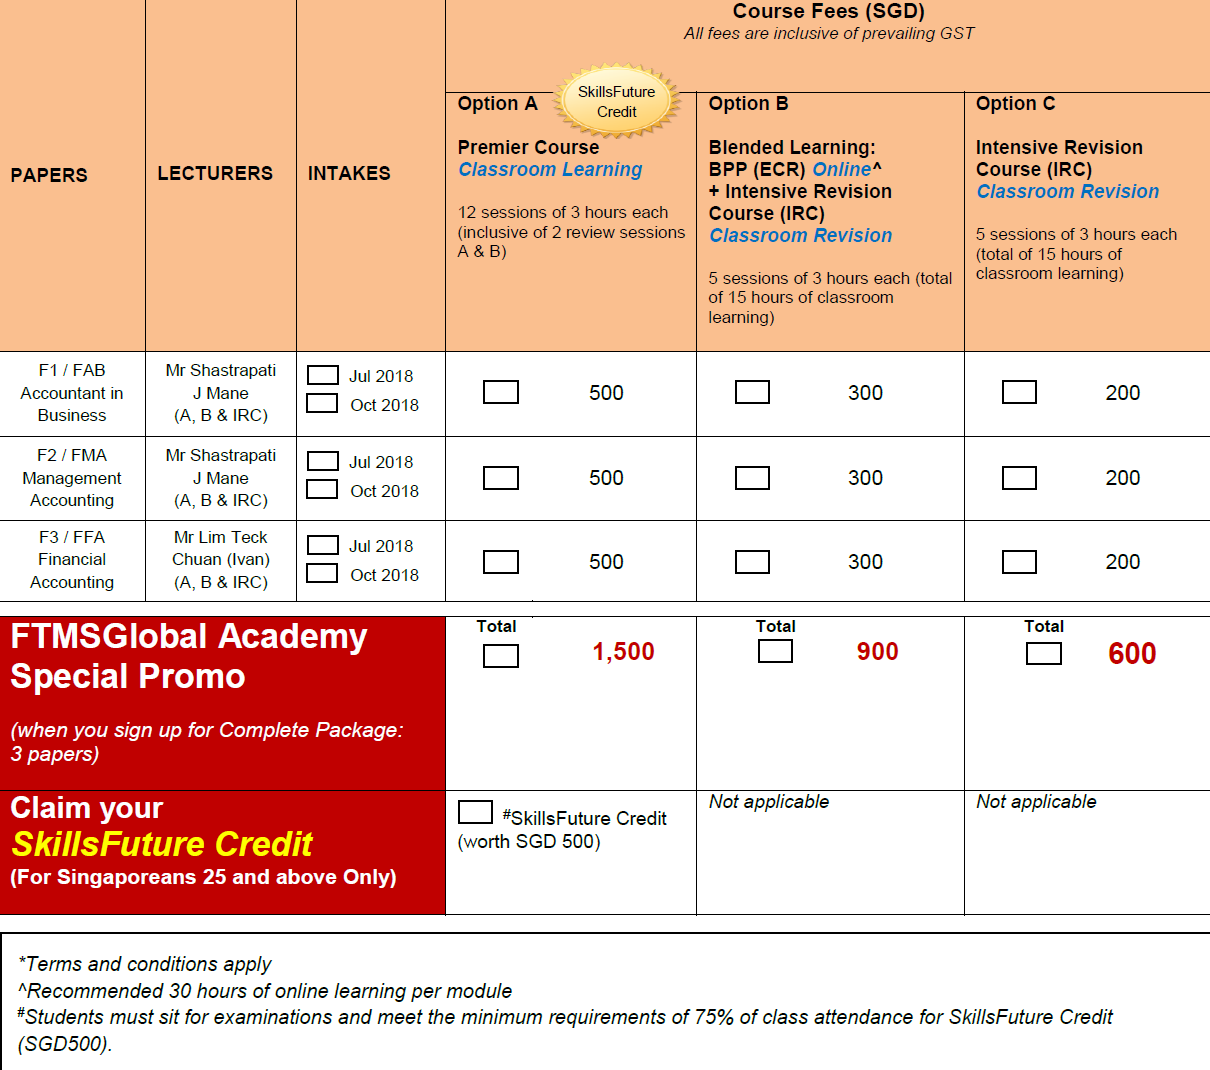 ACCA Course Fees | FTMSGlobal Academy, Singapore